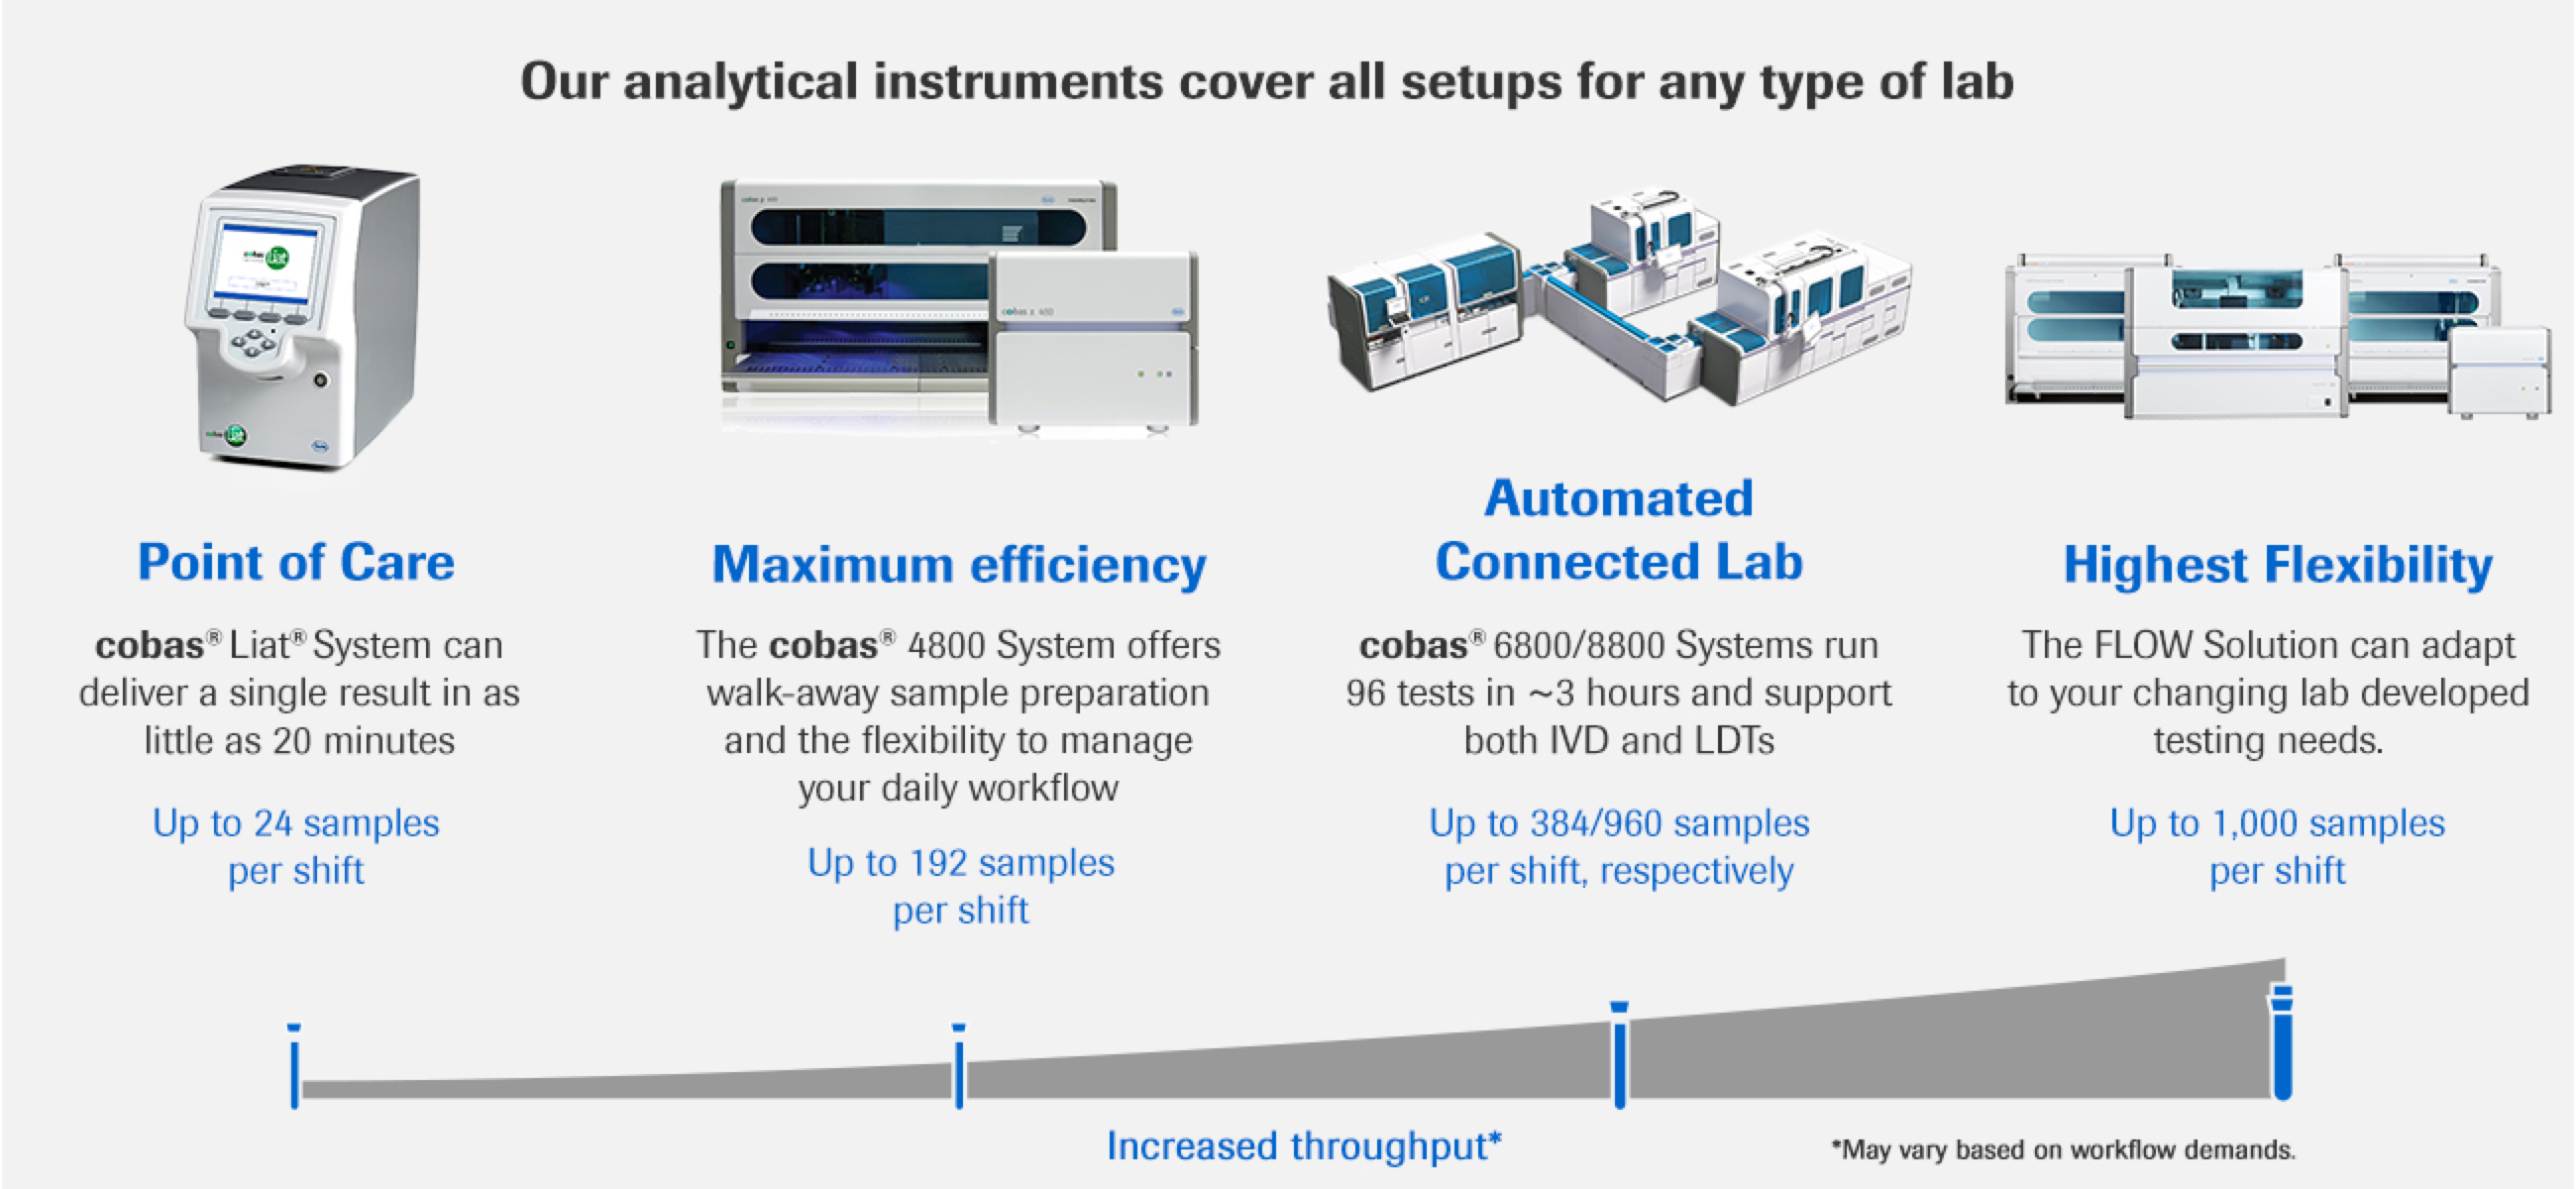 RMD_Systems_Analytical Instruments Cover All Setups